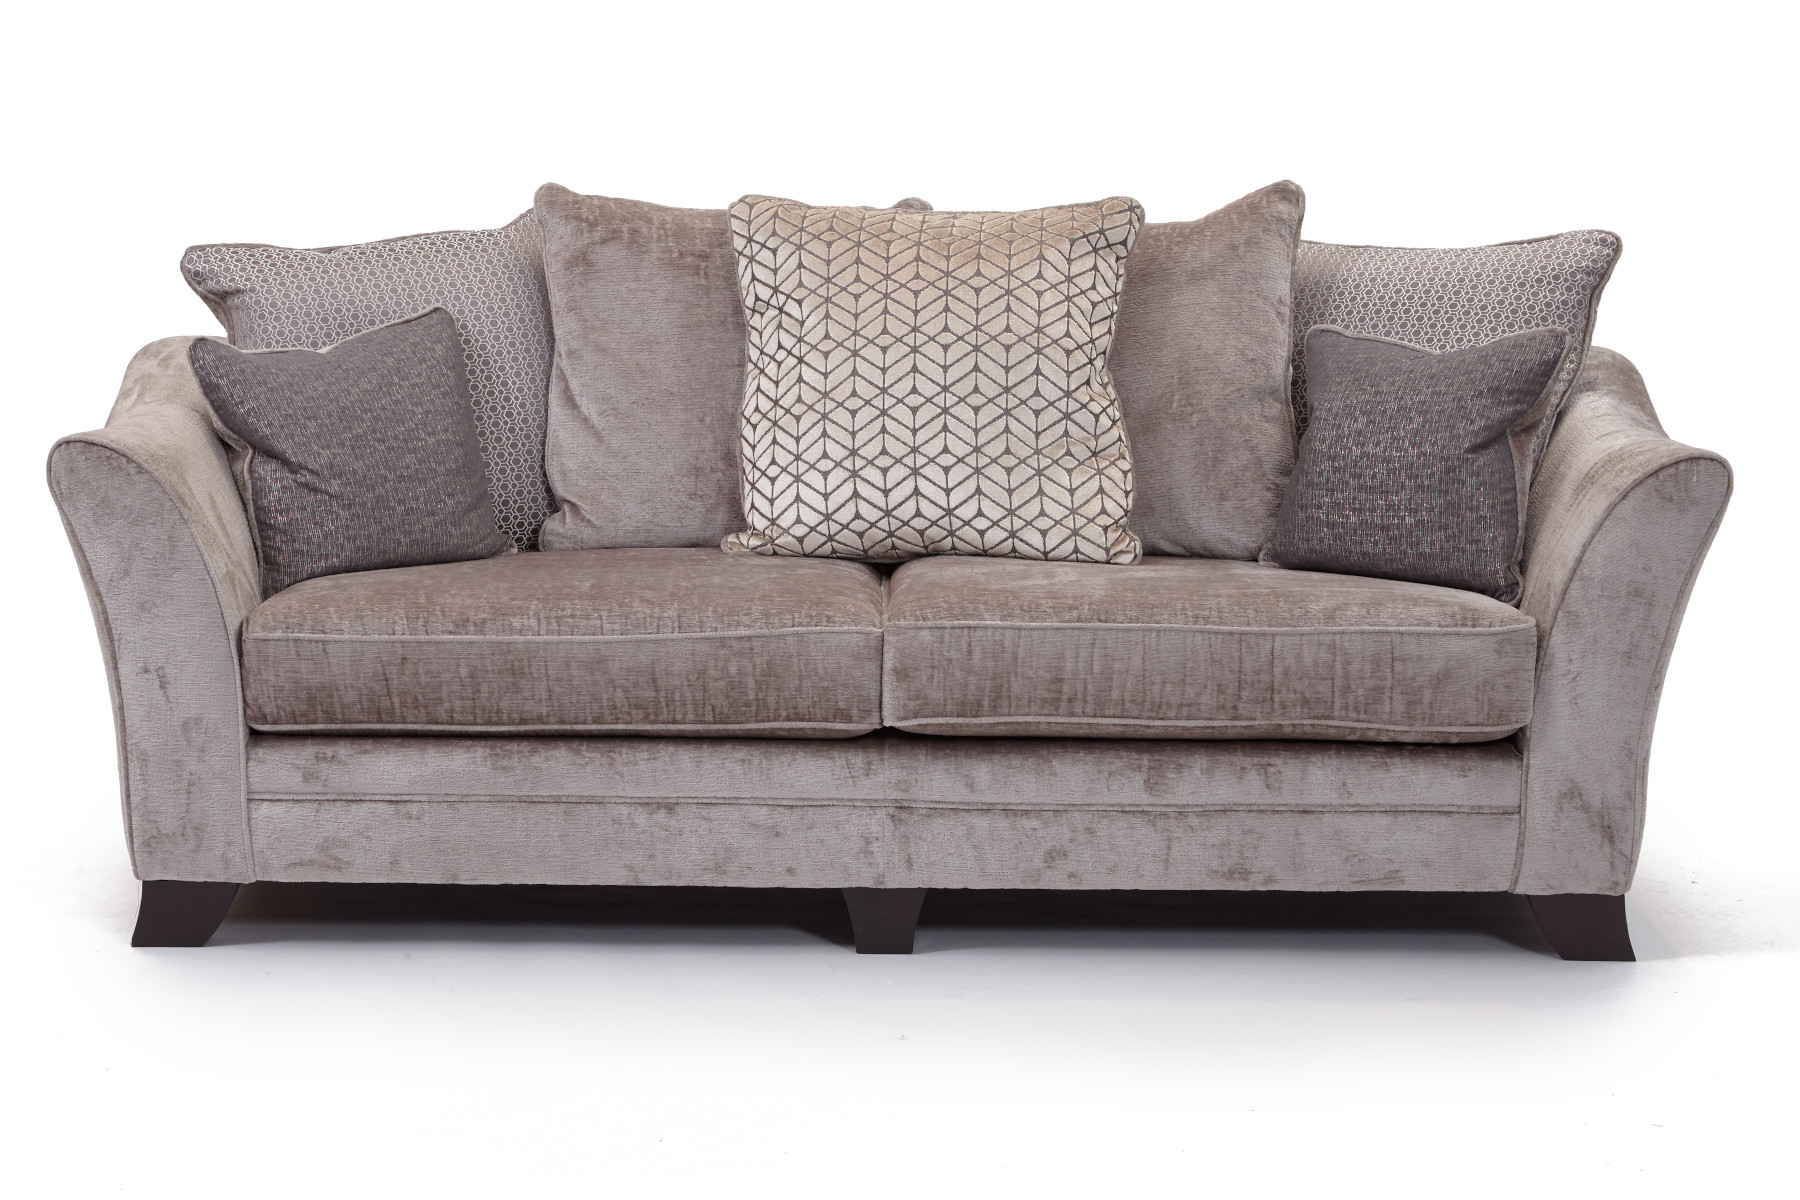 Margate 4 Seater Sofa